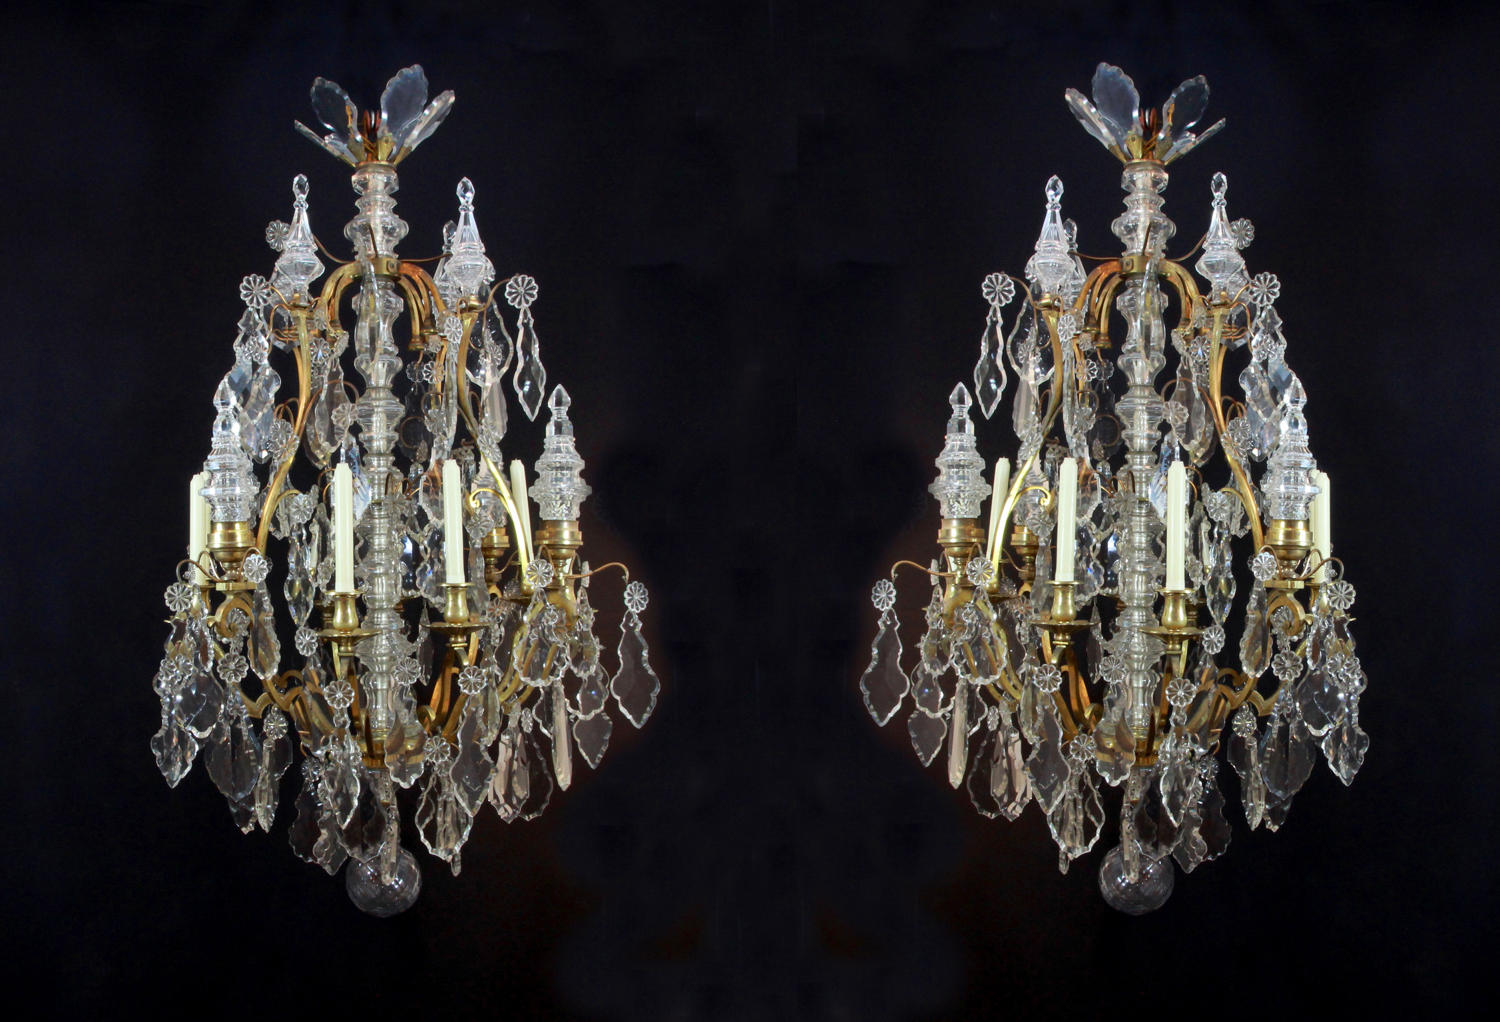 A pair of superb 18th c style chandeliers